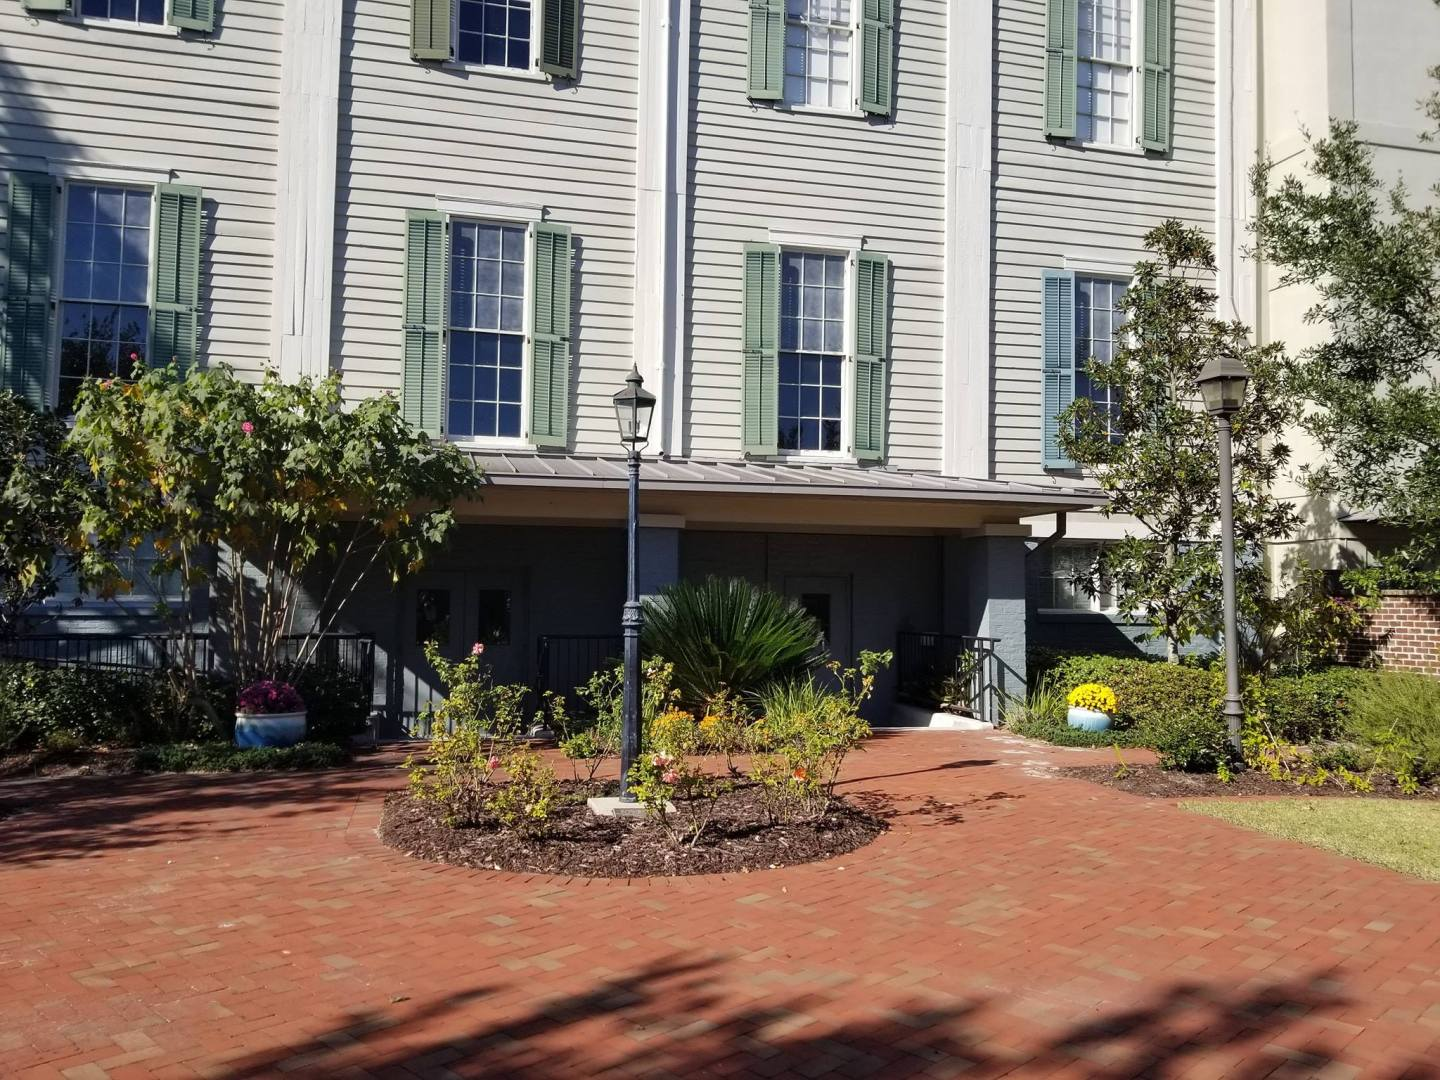 46845198_263404830991215_2767493139596836864_o-1440x1080 The Beach Institute: The First School for African Americans in Savannah after Emancipation